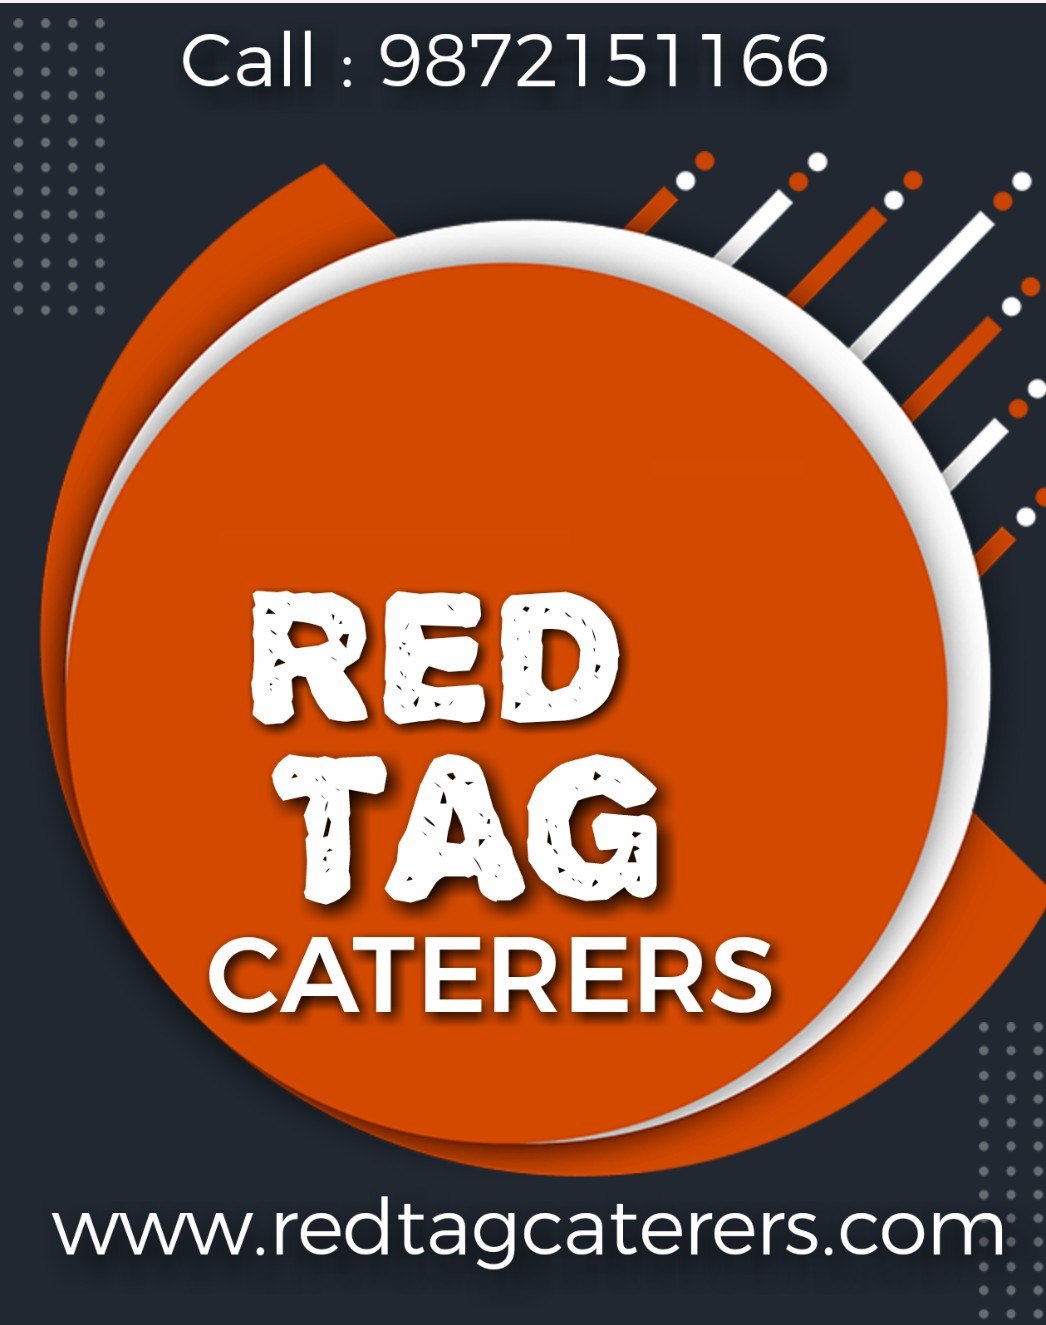 Red Tag Caterers, Best caterers in Ludhiana with vegetarian cuisine, best wedding caterers in Ludhiana, best catering service company in Ludhiana, best party catering service in Ludhiana, best caterers,